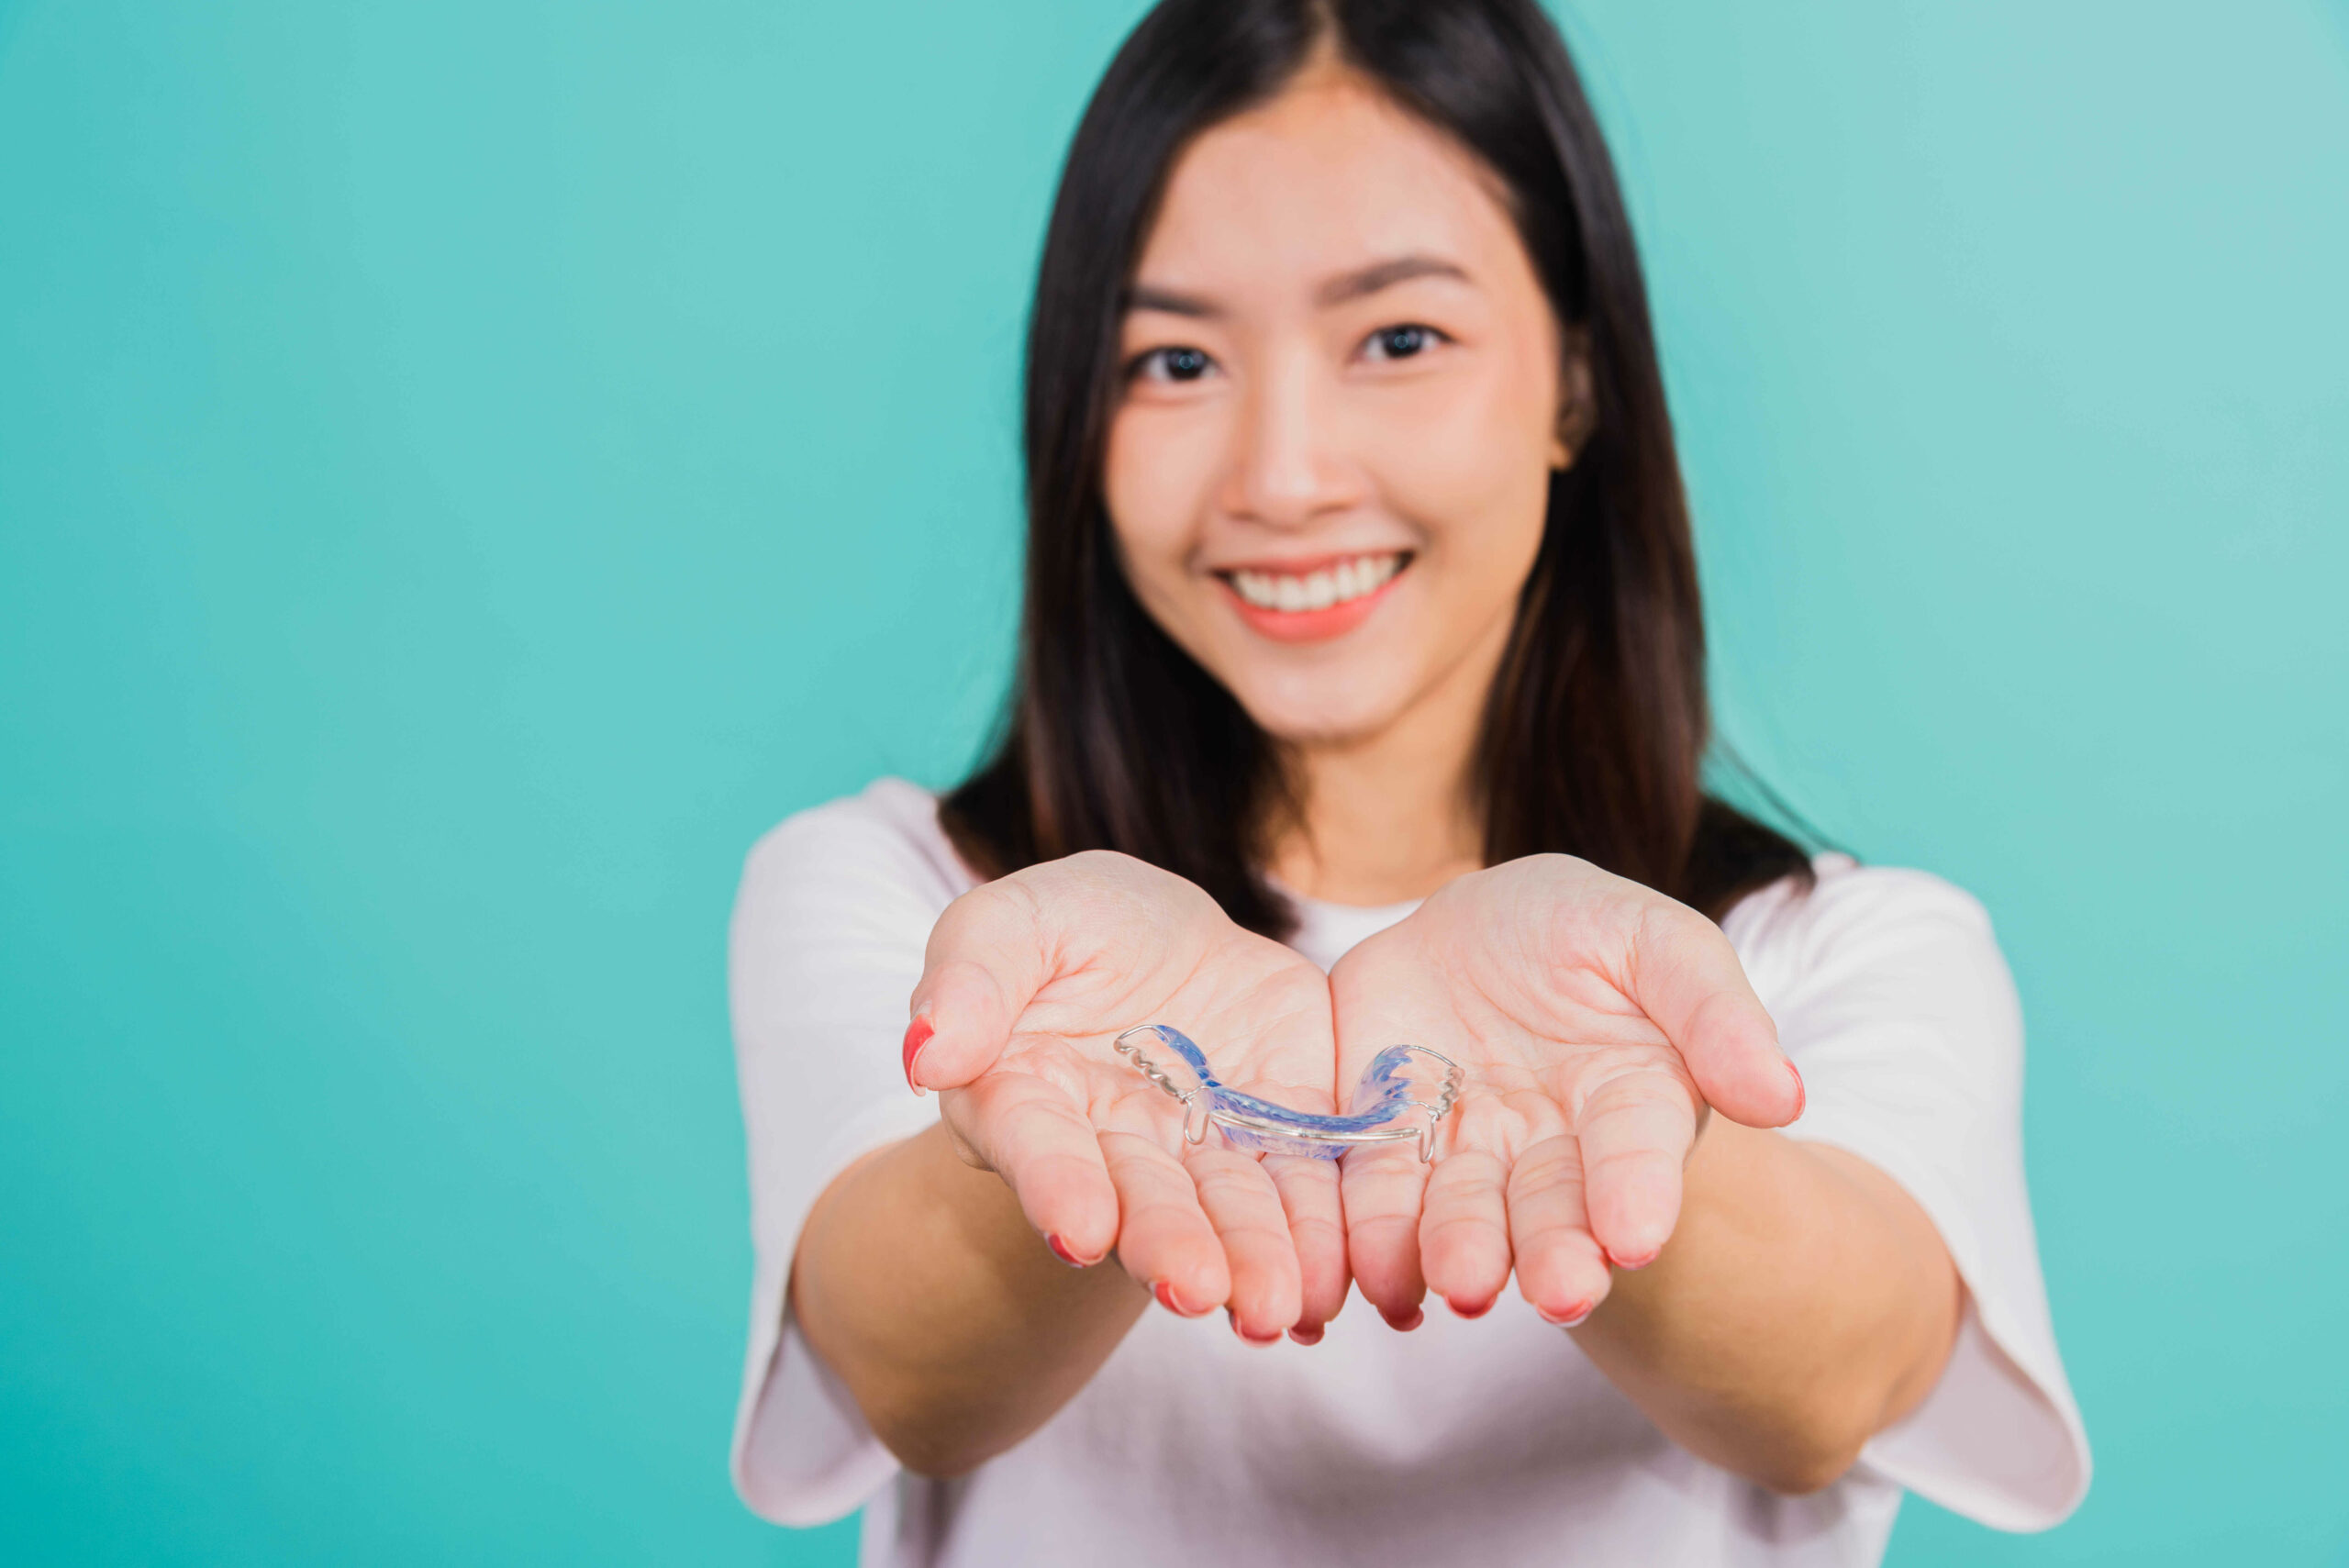 portrait-young-asian-beautiful-woman-smiling-holding-silicone-orthodontic-retainers-for-teeth-on-hand-palm-in-chicago